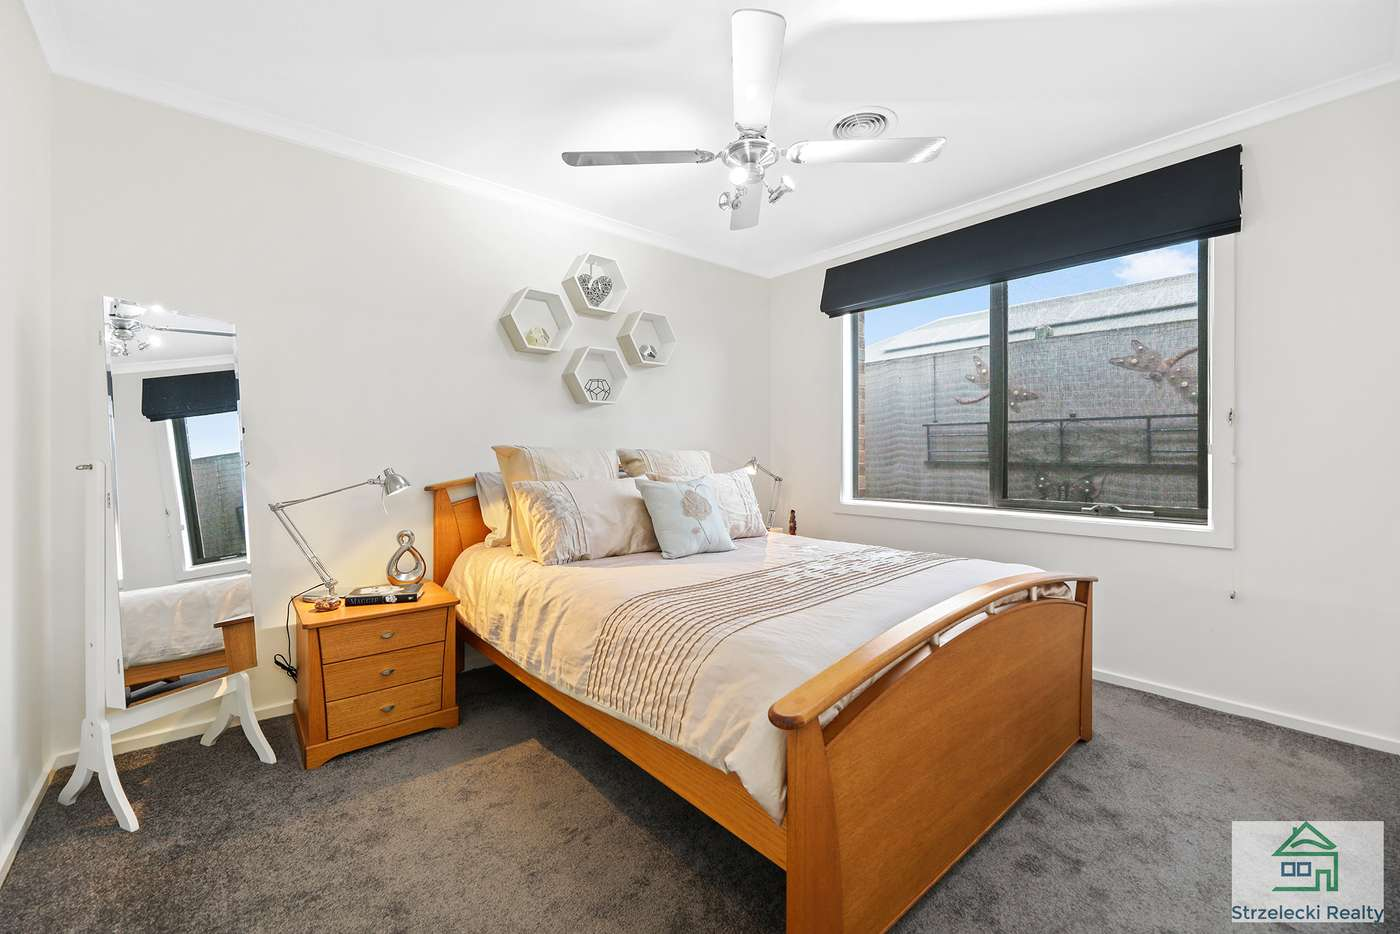 Seventh view of Homely house listing, 47 Davey Dr, Trafalgar VIC 3824